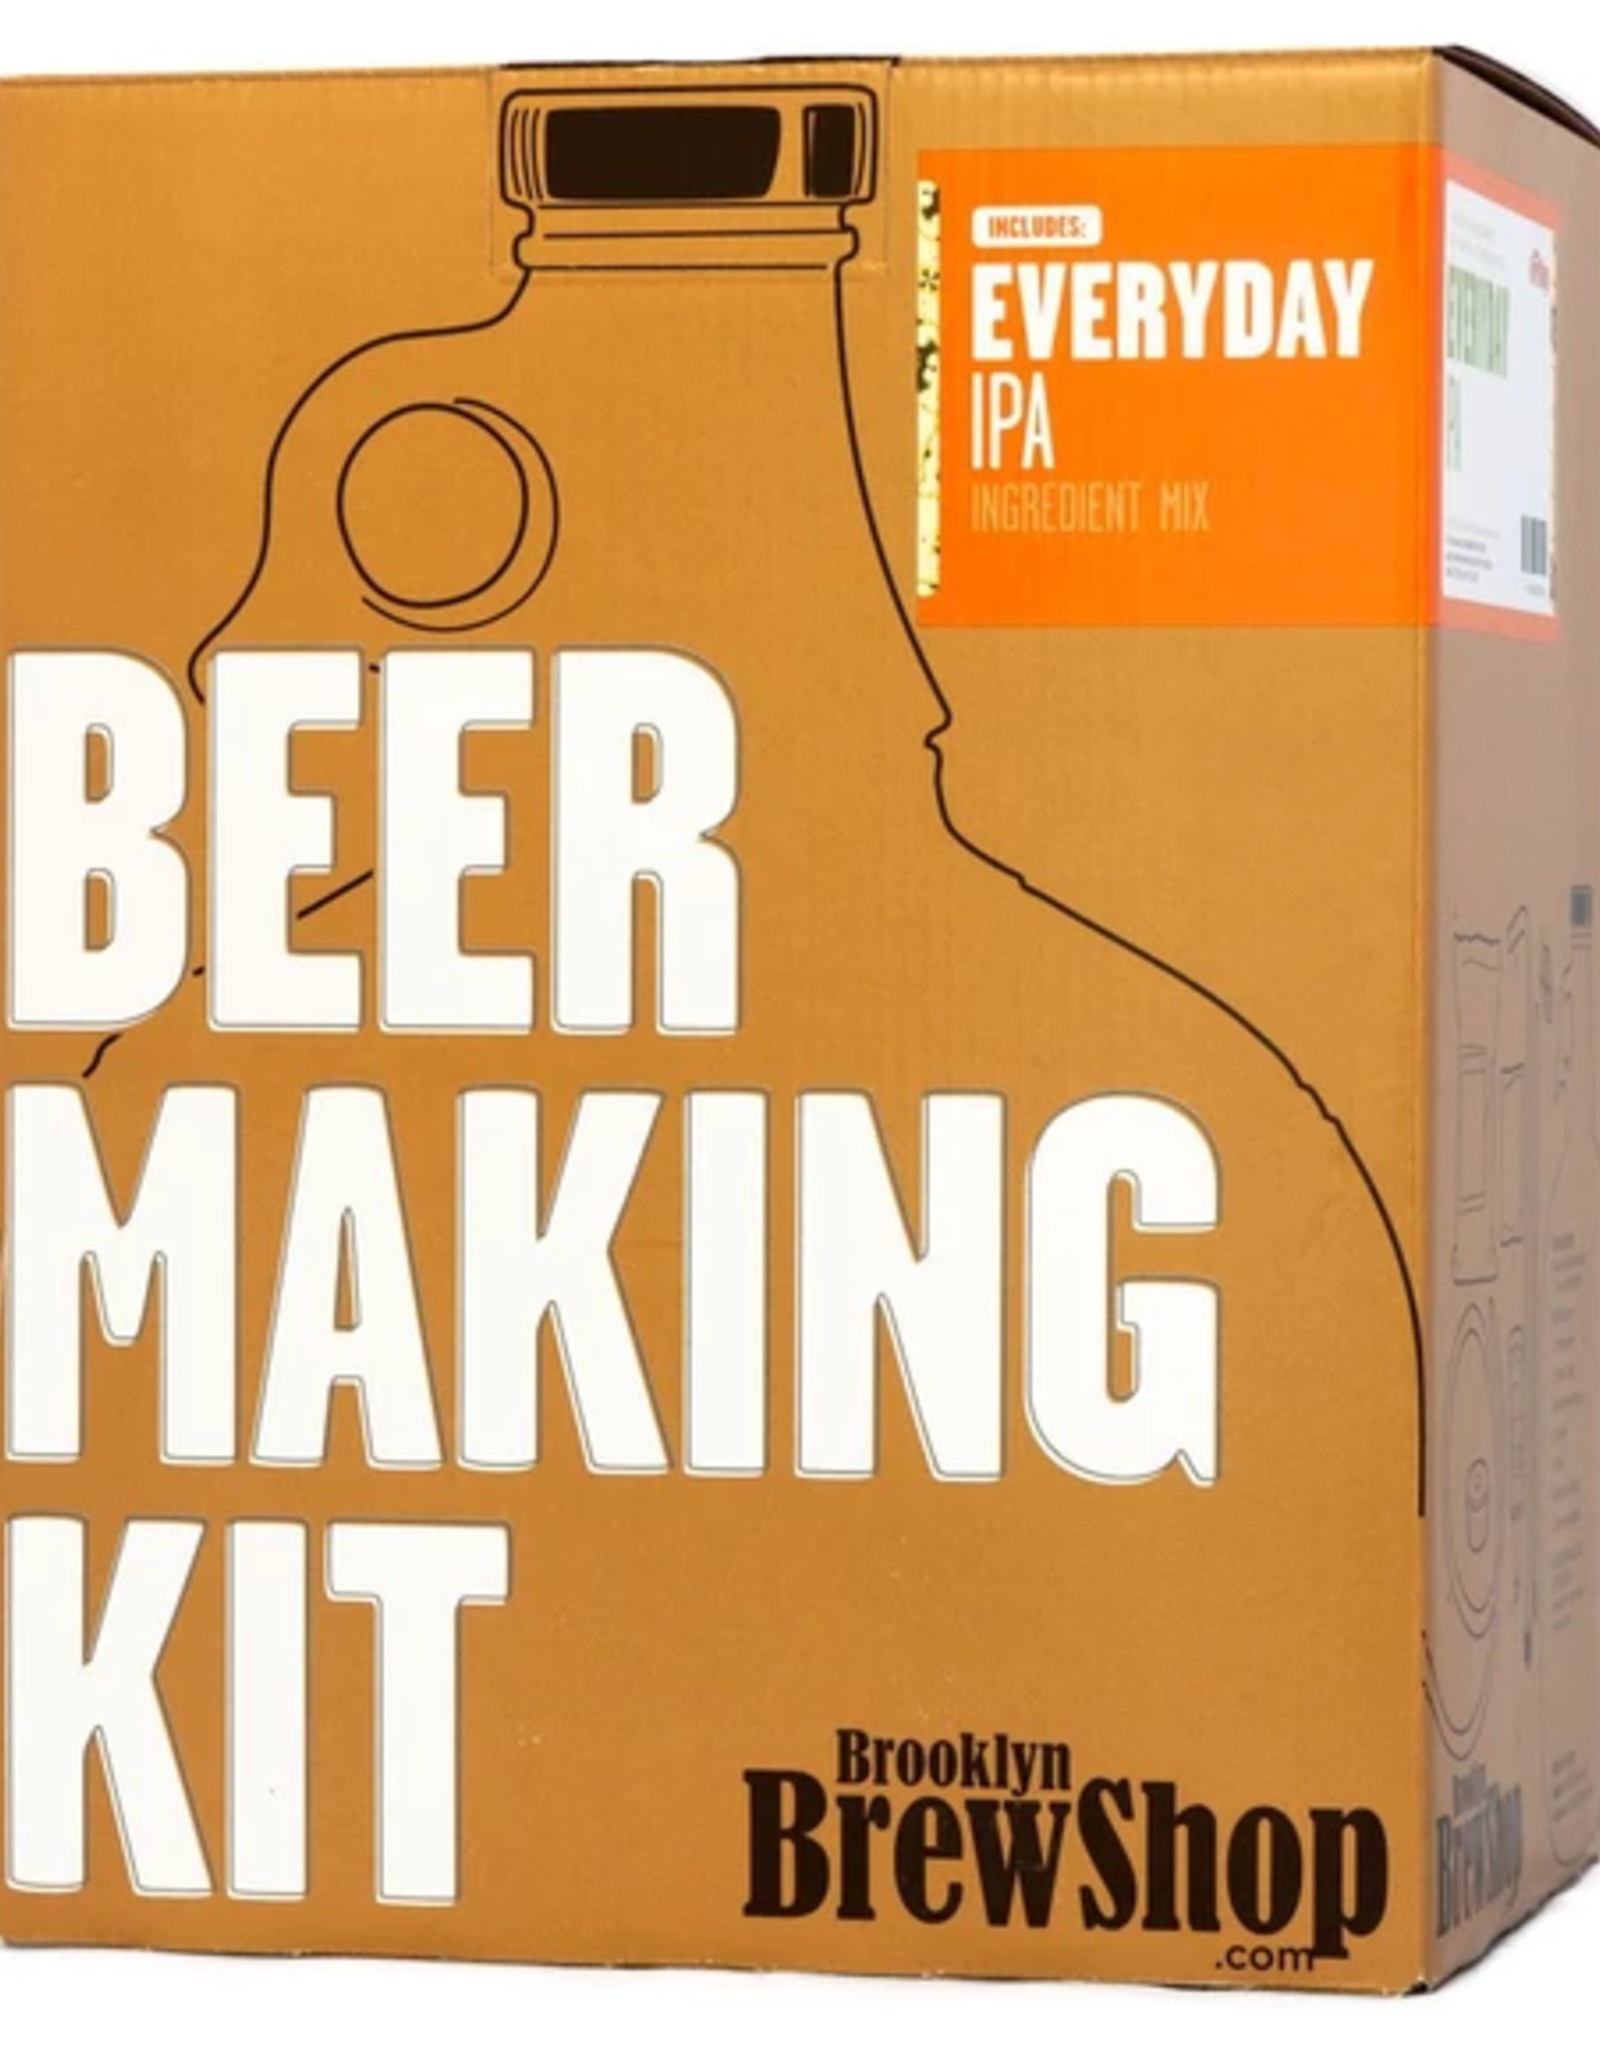 Brooklyn Brew Shop Everyday IPA: Beer Making Kit